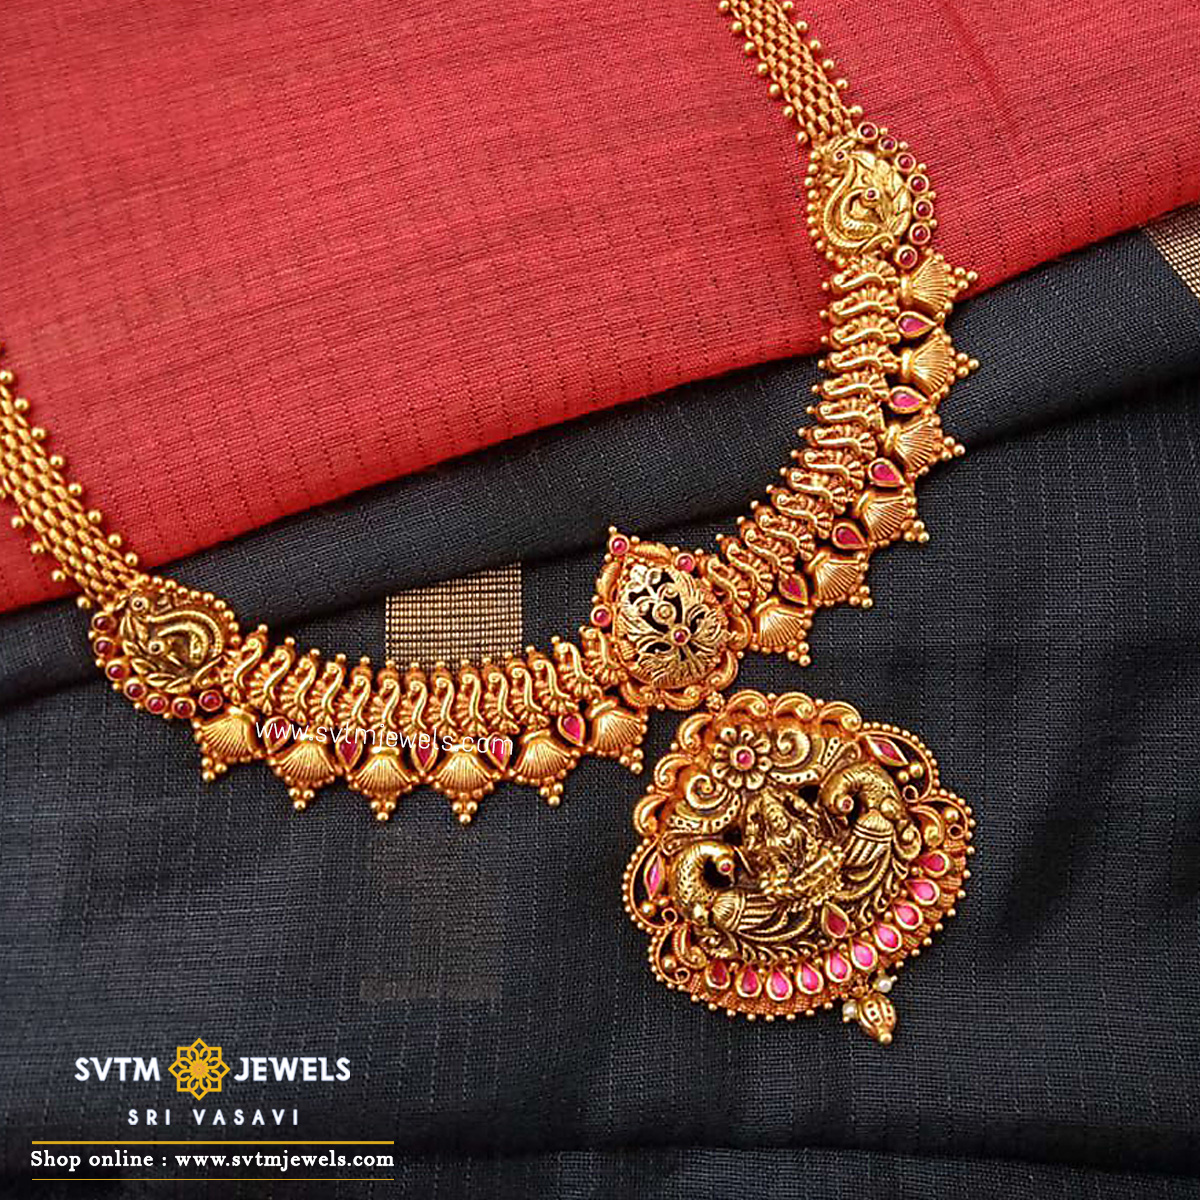 Vibhuti Playact Necklace